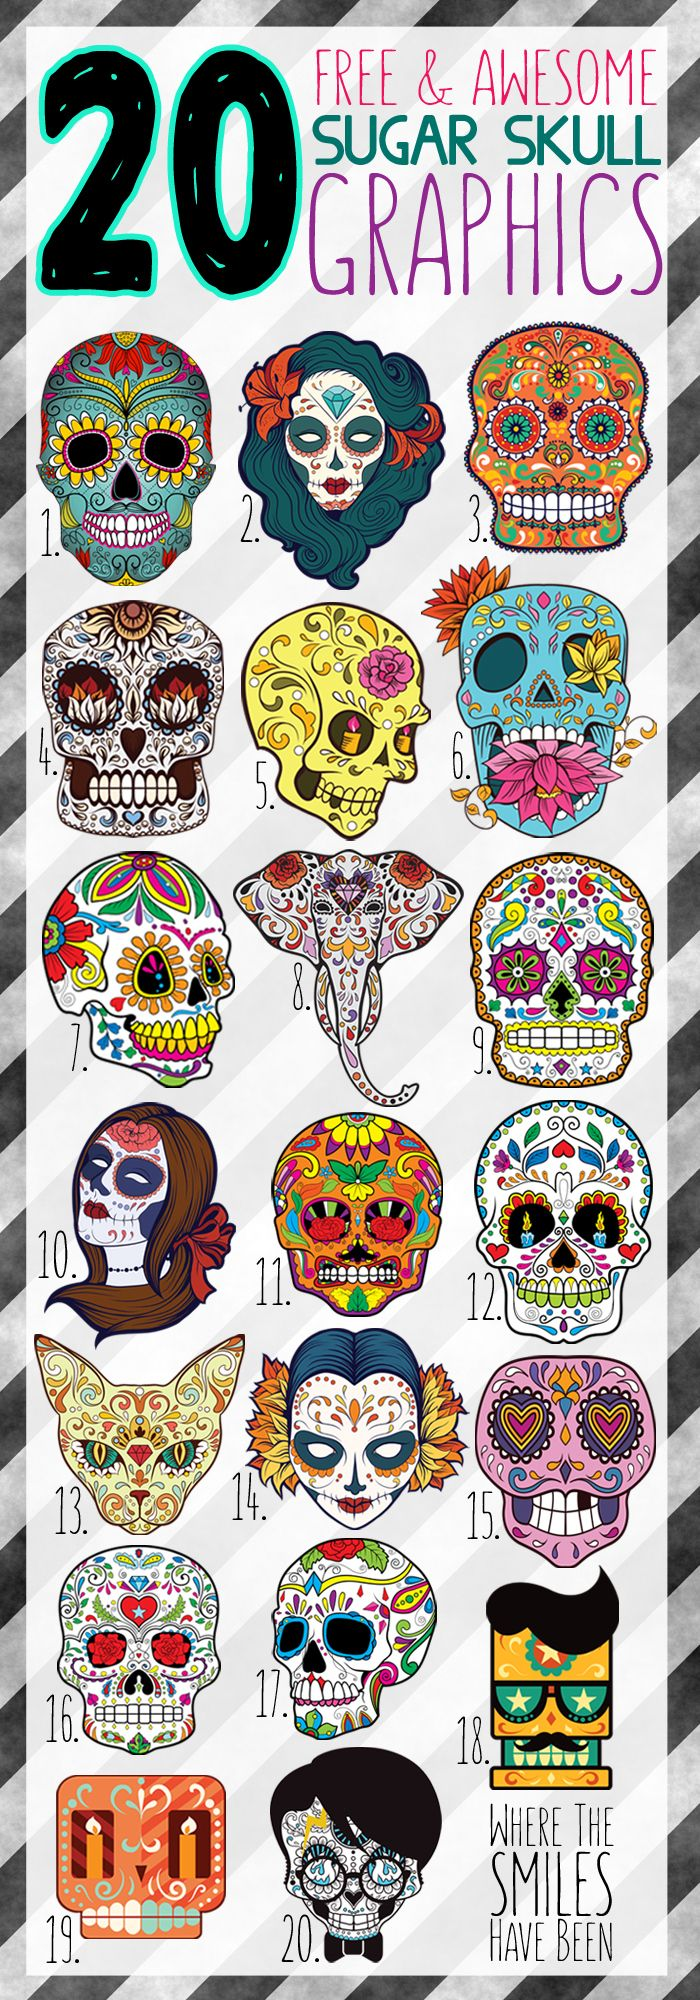 20 Free & Awesome Sugar Skull Graphics! | Where The Smiles Have Been